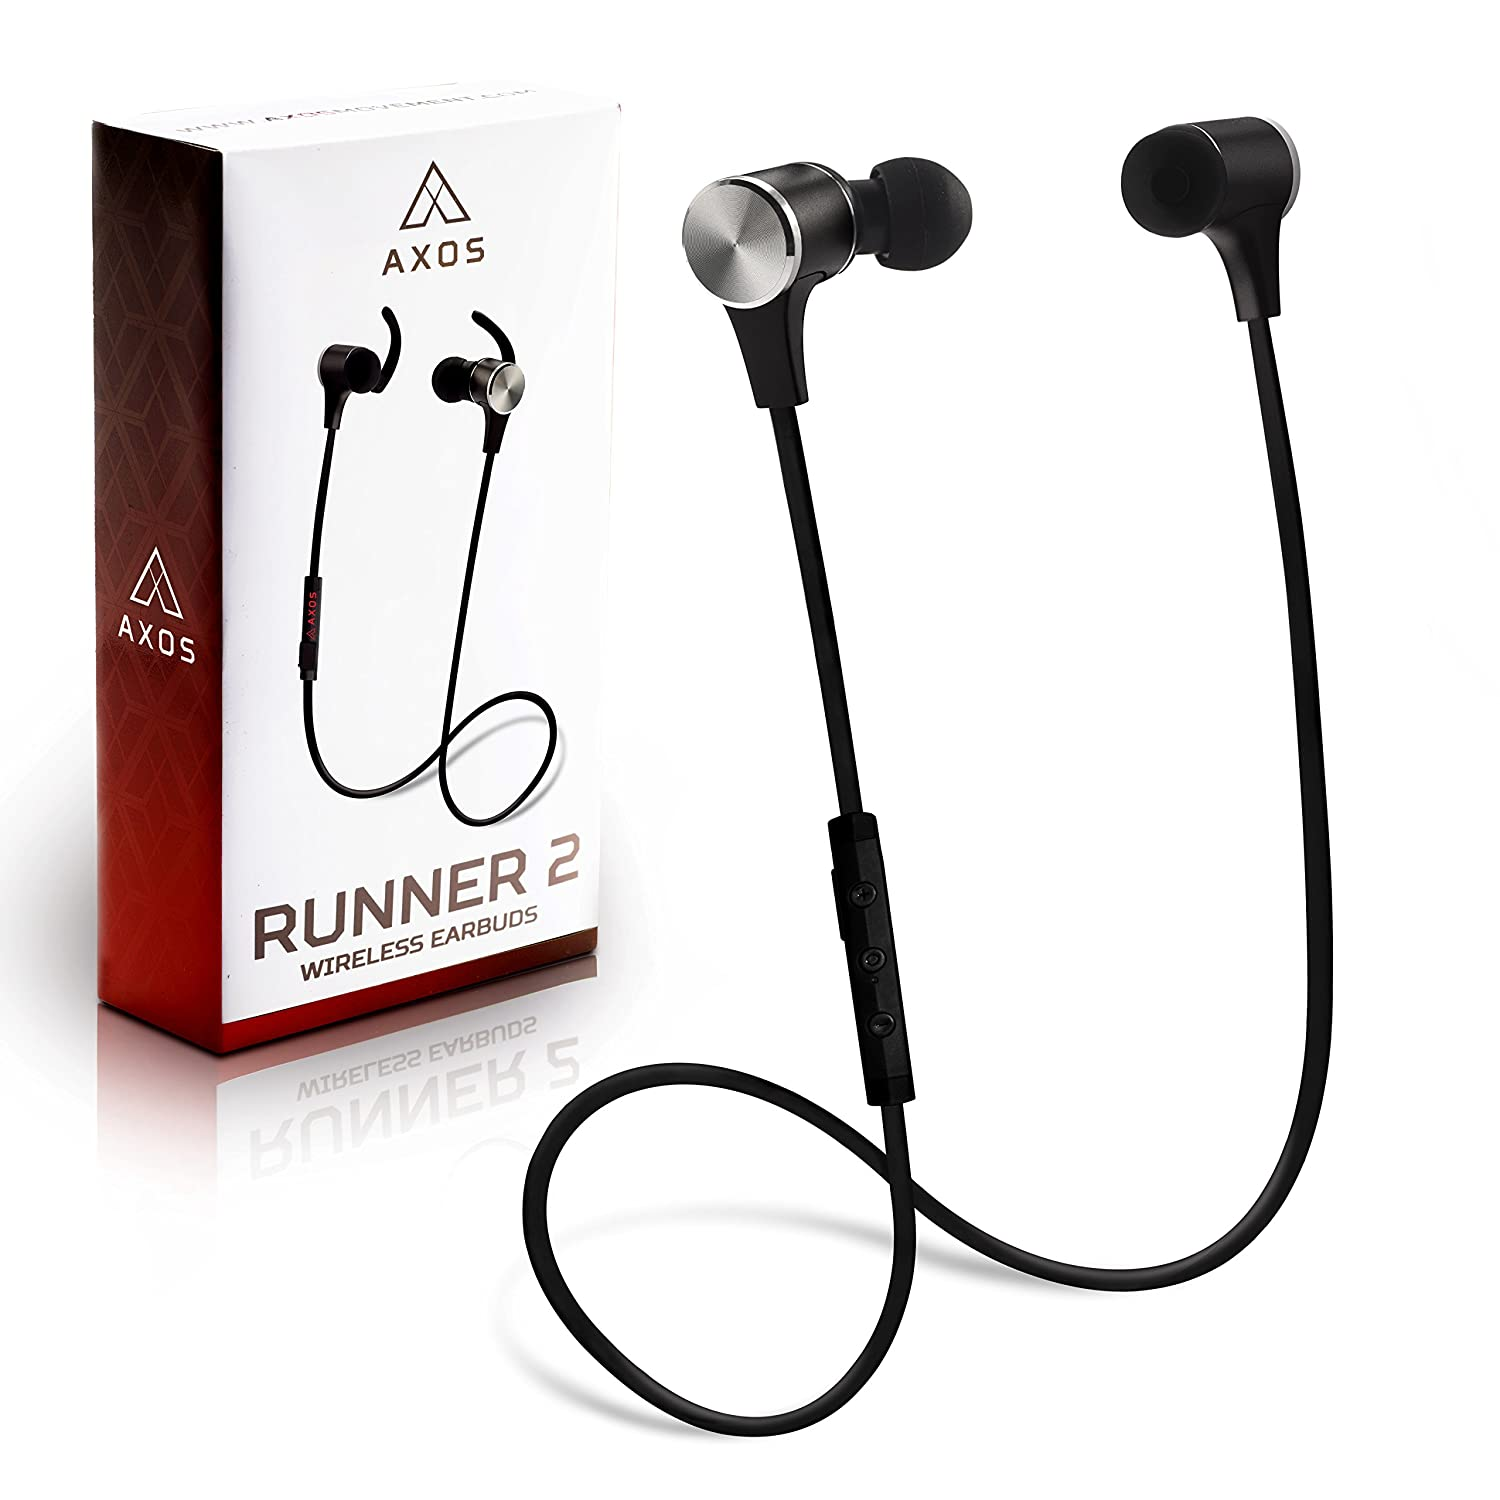 Runner 2 Wireless Bluetooth Earbuds By Axos Noise Speaker Portable Pa Addons Bob Audio 12 Inch 3 Mic Digital Isolating Sport Headphones With Microphone For Running And Lifting Home Theater